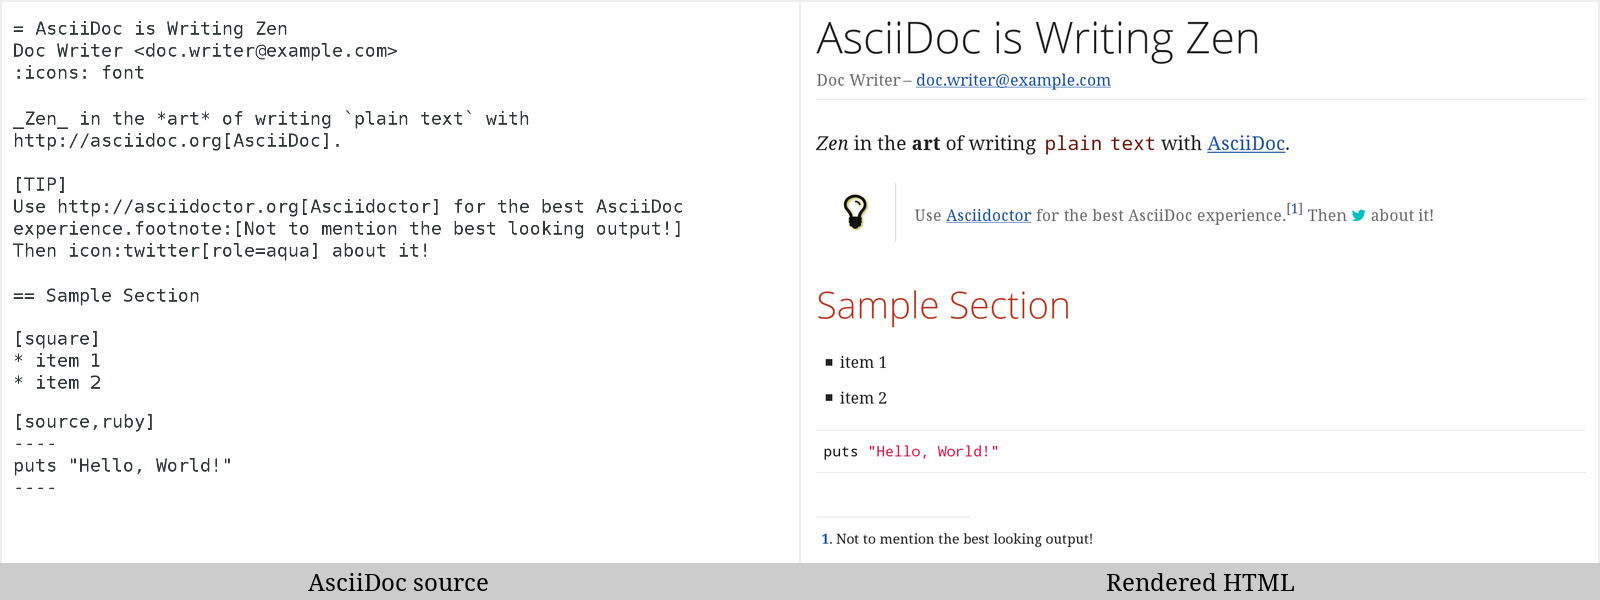 Preview of AsciiDoc source and corresponding HTML